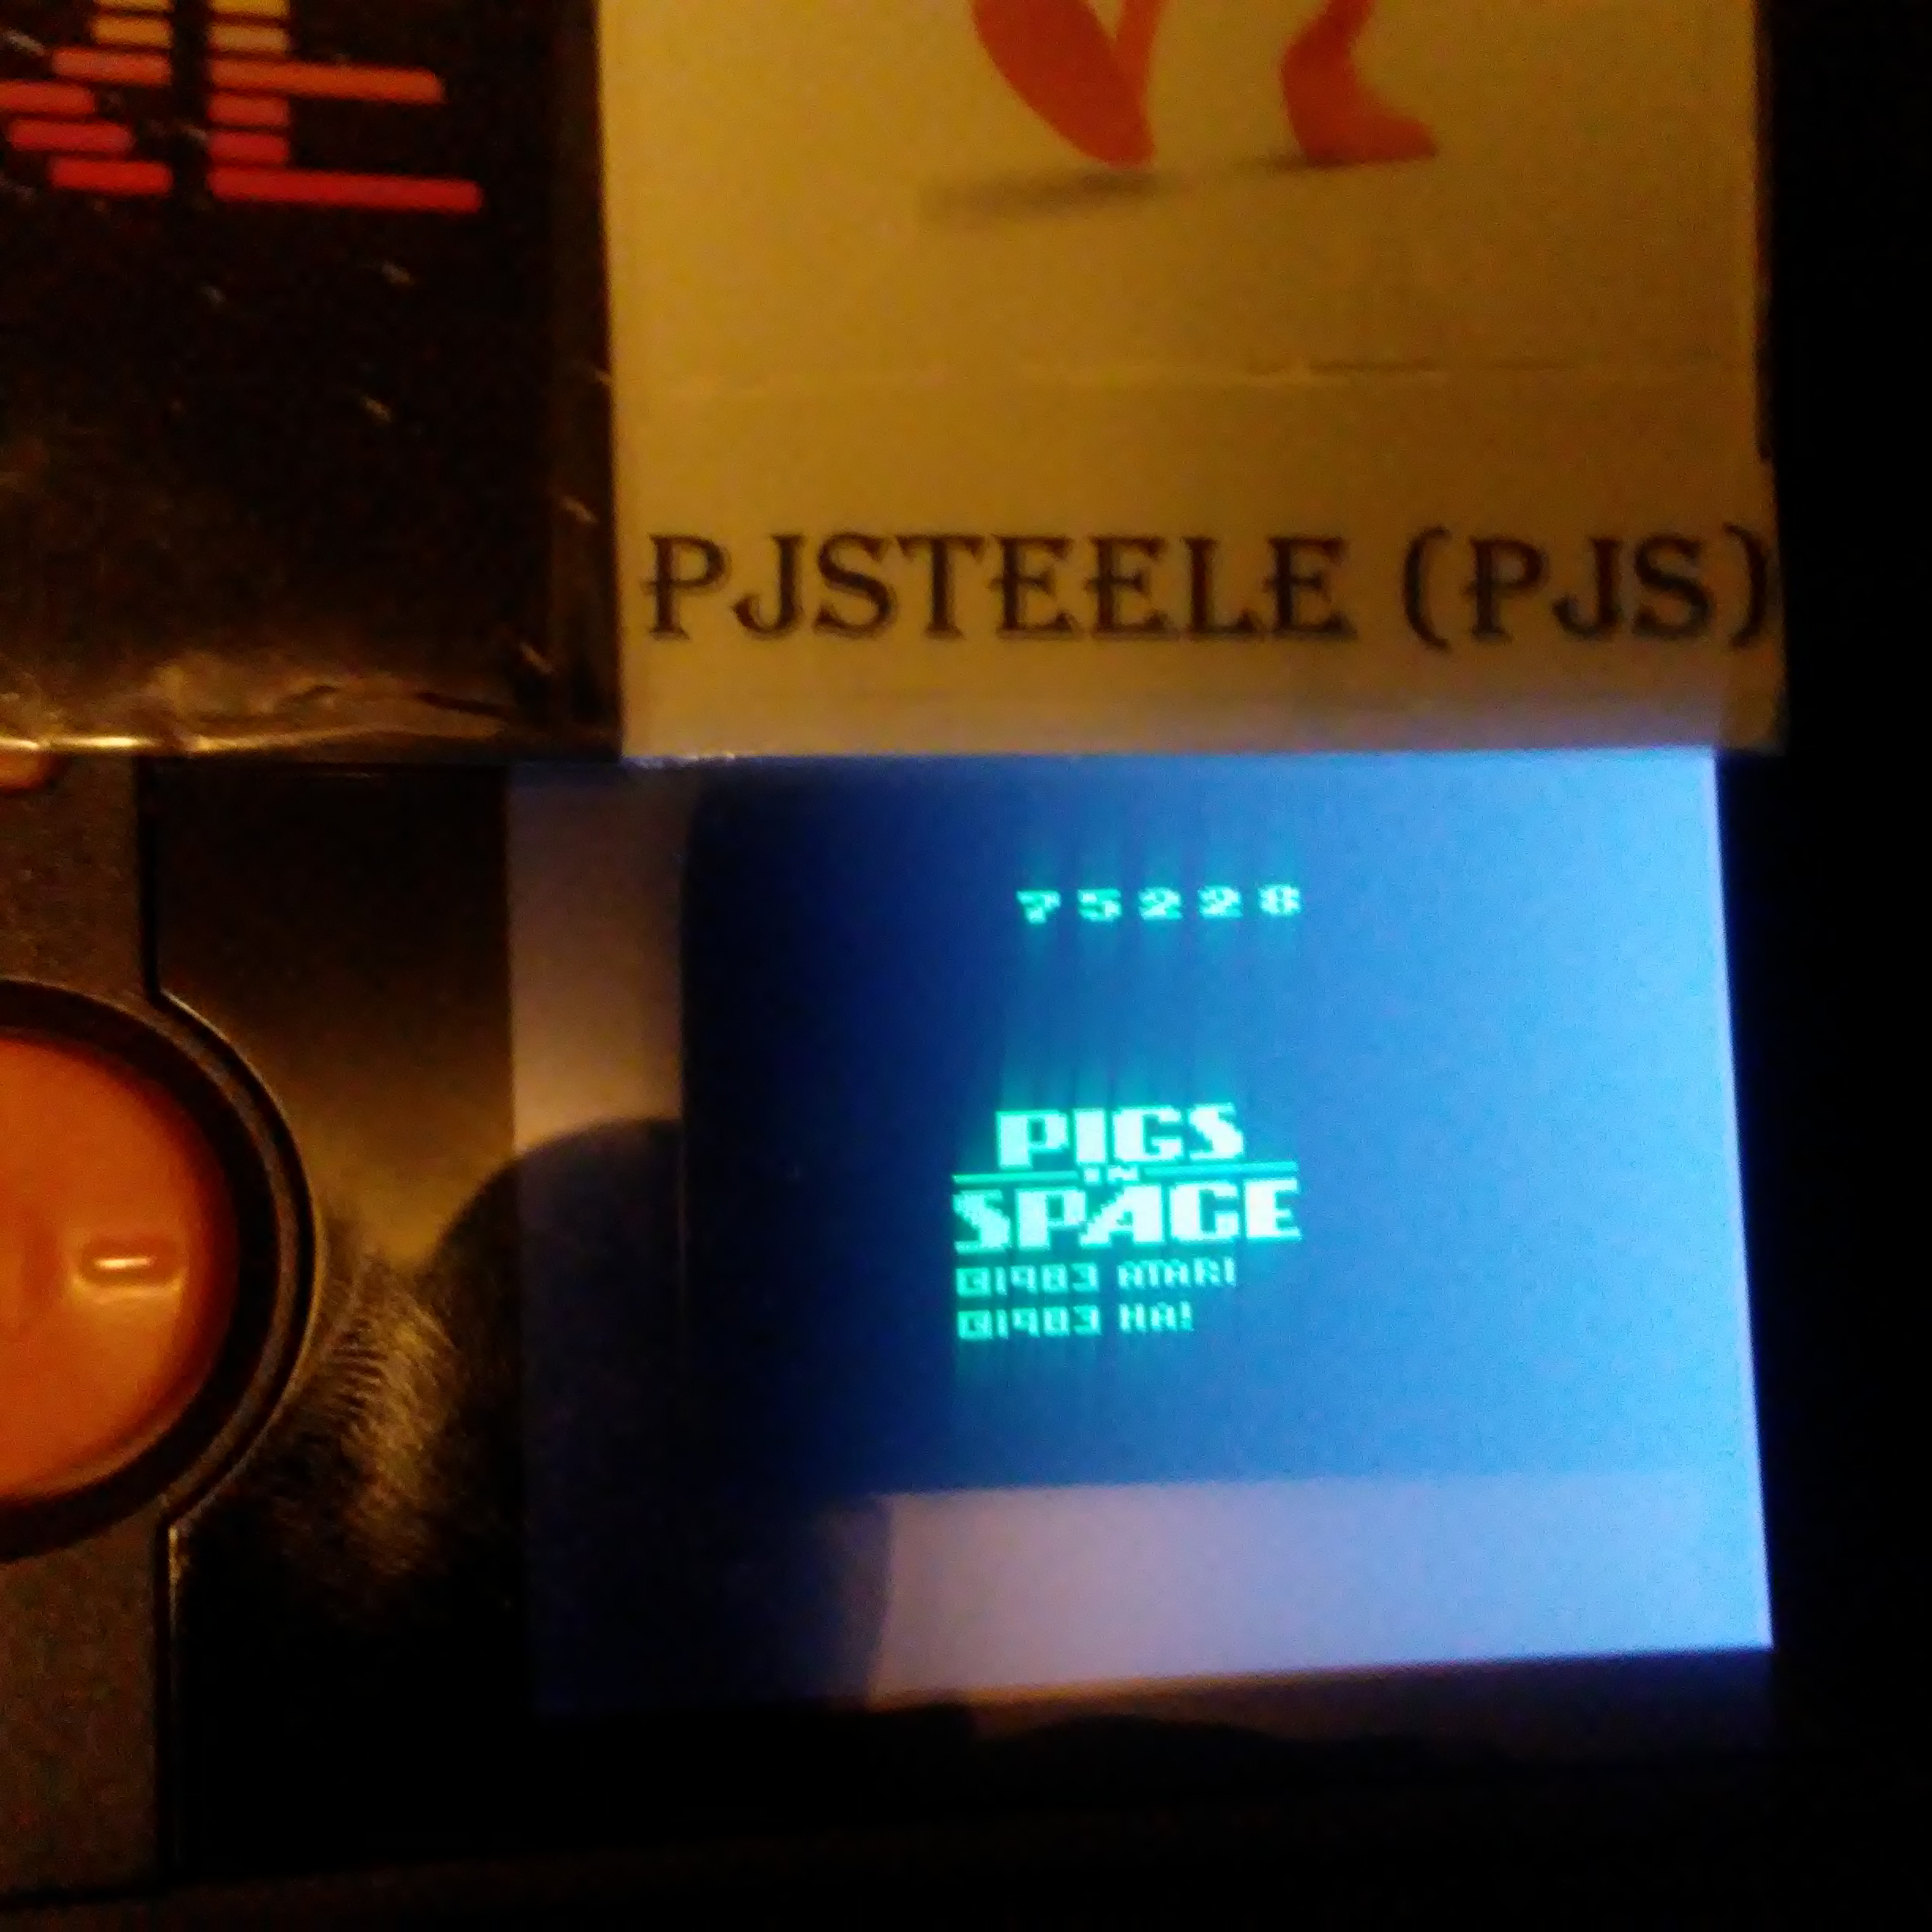 Pjsteele: Pigs In Space (Atari 2600 Emulated Novice/B Mode) 75,228 points on 2018-01-15 08:42:29